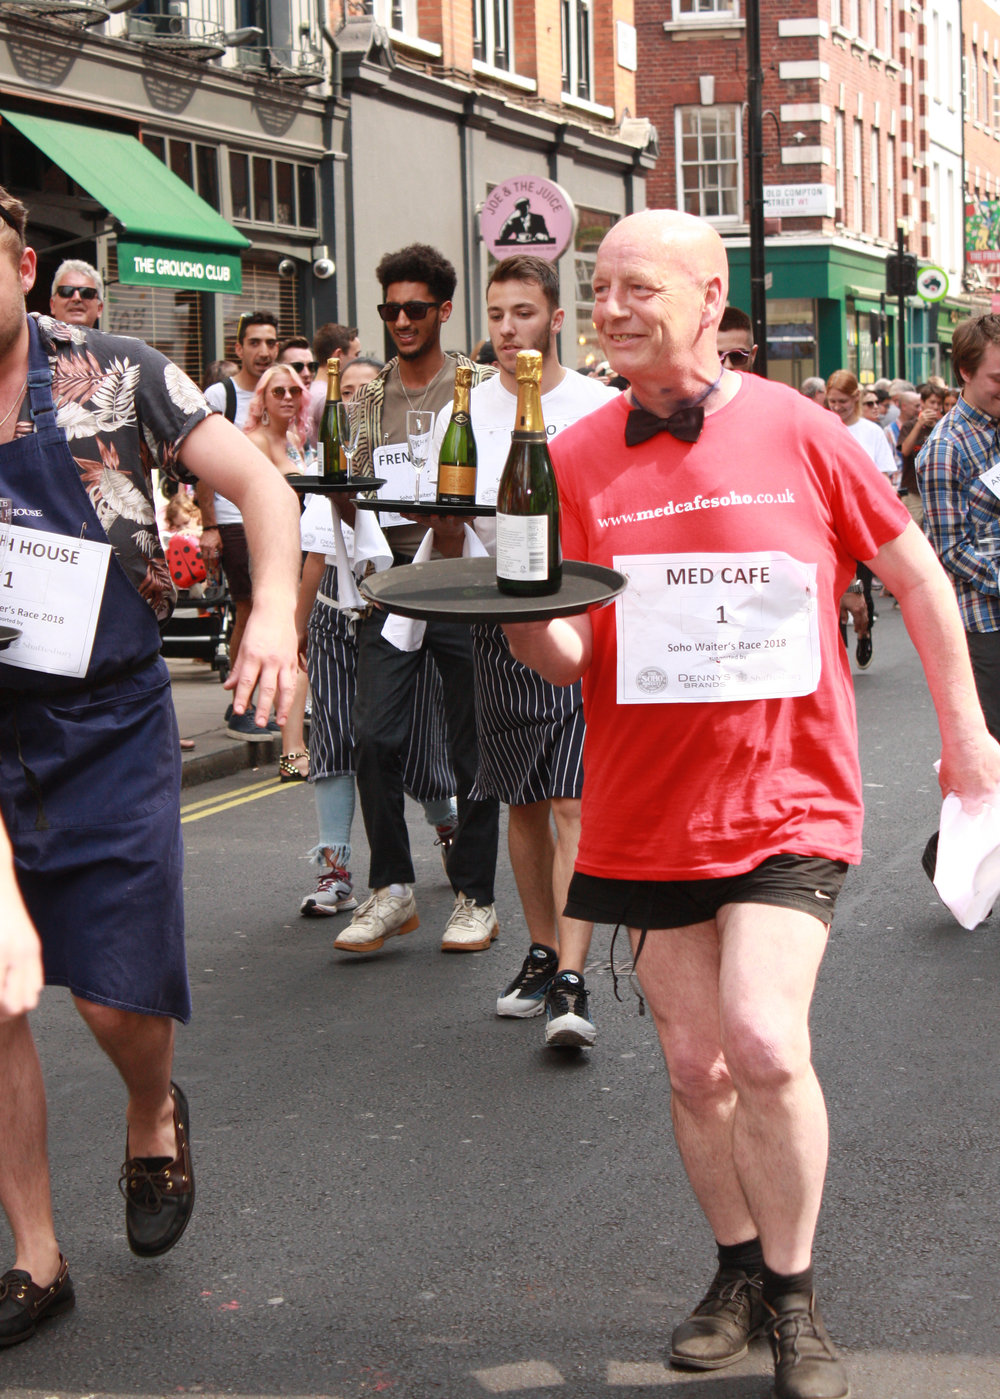 Soho_Fete_Waiters_Race_Med_Cafe.jpg